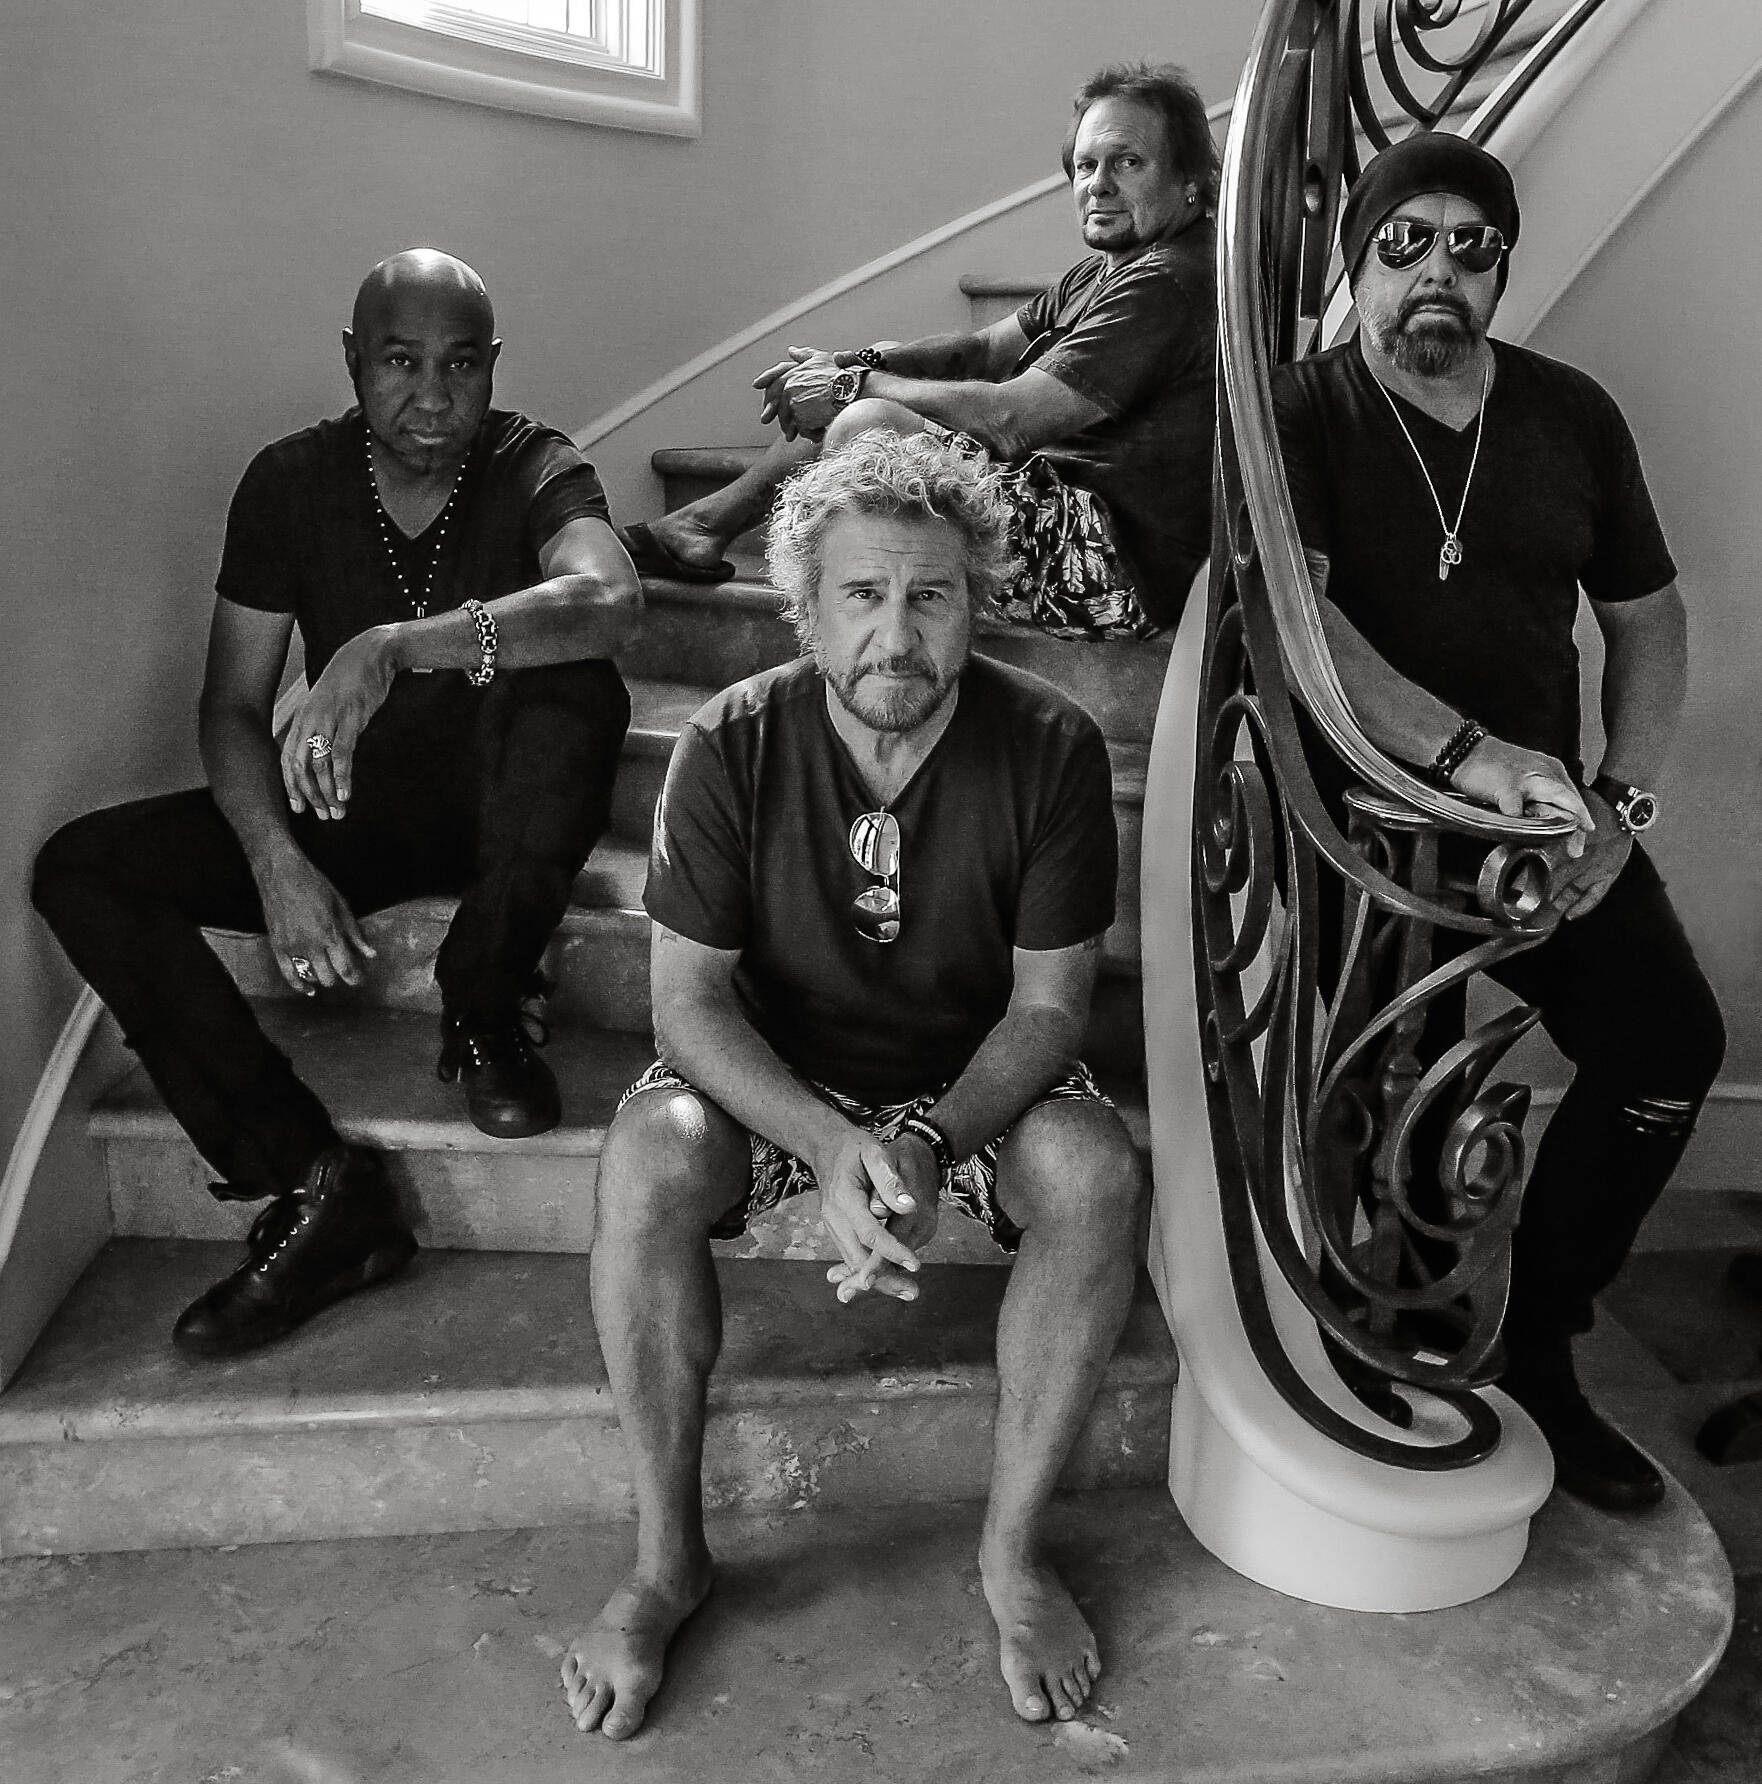 """Sammy Hagar & The Circle Reveal Music Video For """"Trust Fund Baby"""""""